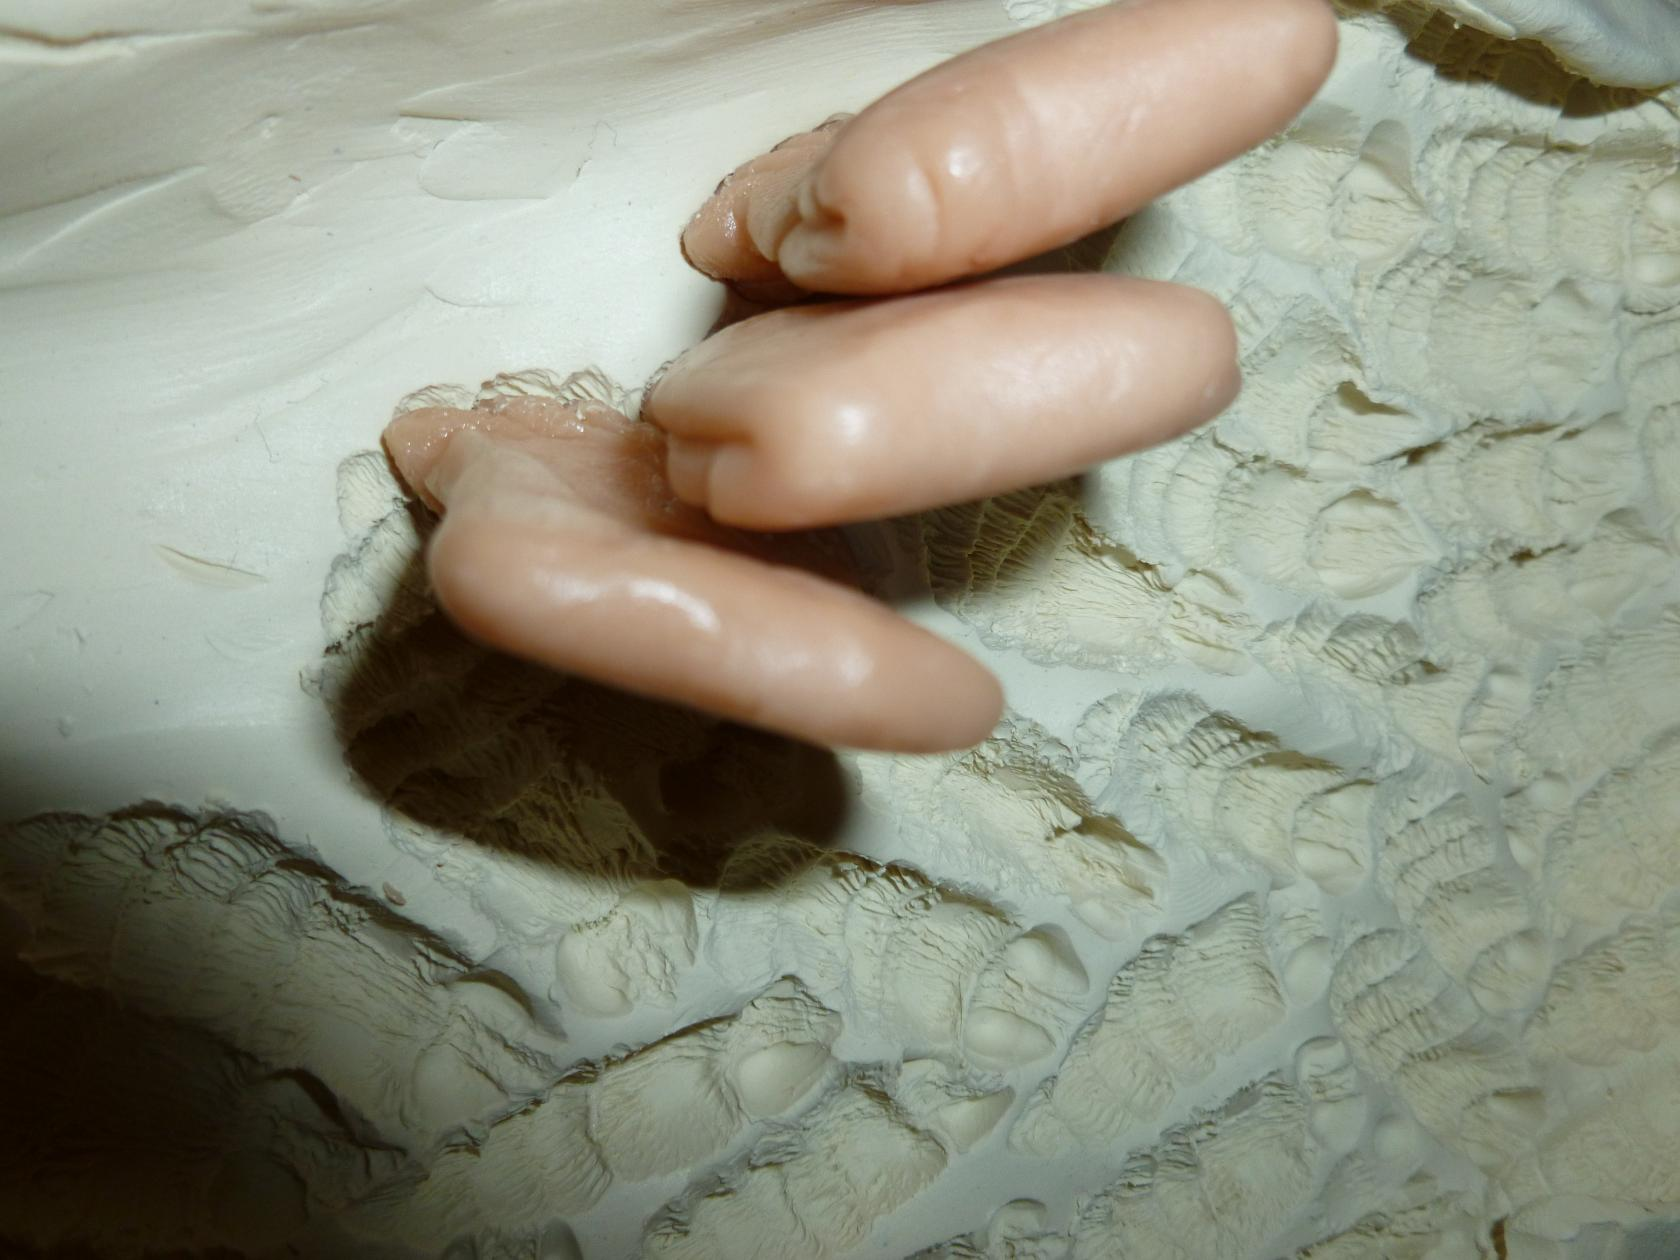 Picture of Imprinting the Mold